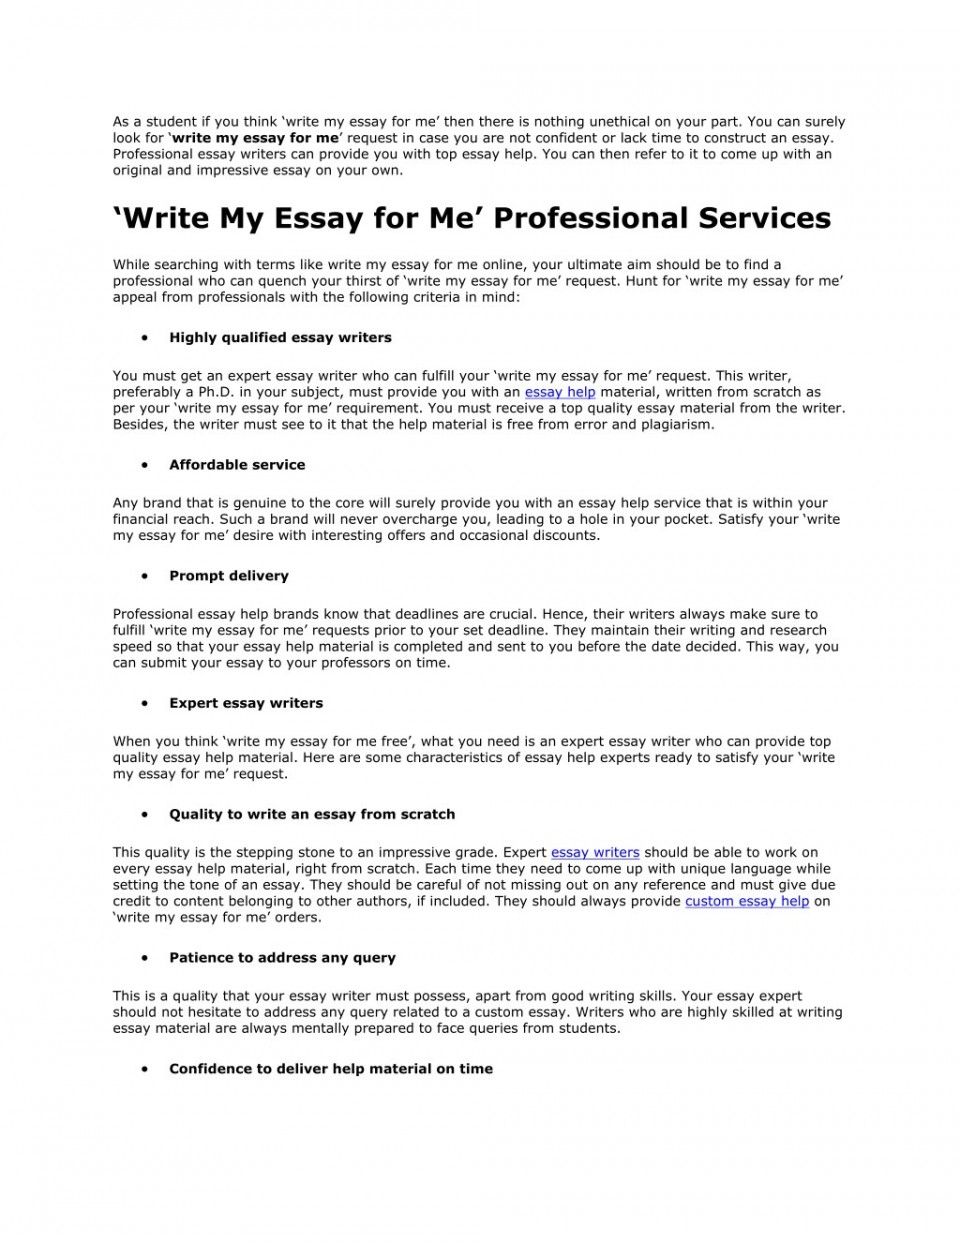 017 Write My Essay For Me Example As Student If You Think Surprising Reviews Canada Free Uk 960